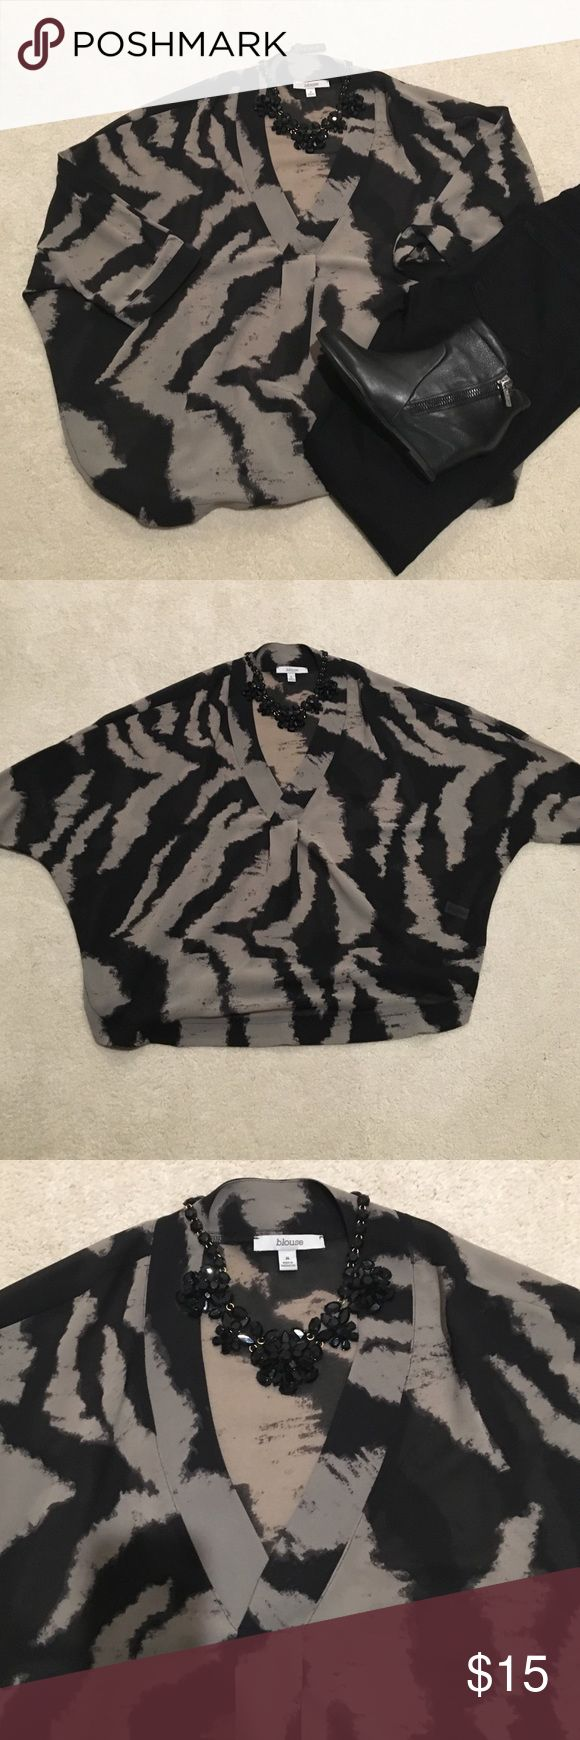 Zebra striped blouse This is a fun semi sheer dolman sleeve blouse with v-neck and zebra print. You definitely need a cami underneath. Looks great with jeans or dress pants for a night out. Tops Blouses